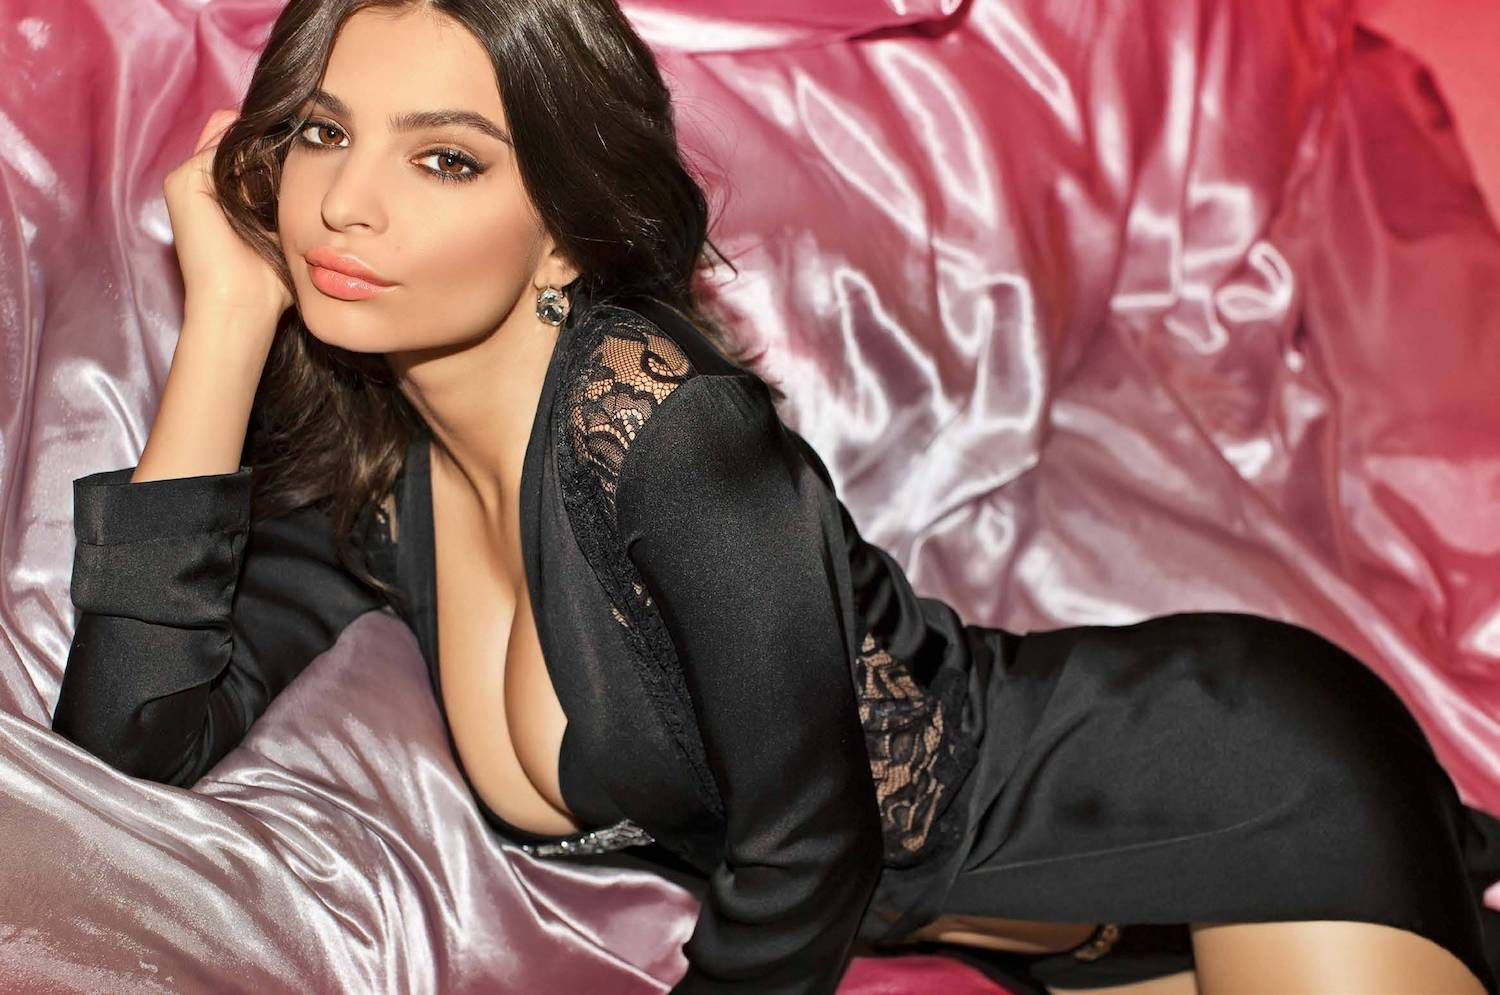 Emily Ratajkowski Hot Black Underwear - Emily Ratajkowski Net Worth, Pics, Wallpapers, Career and Biography